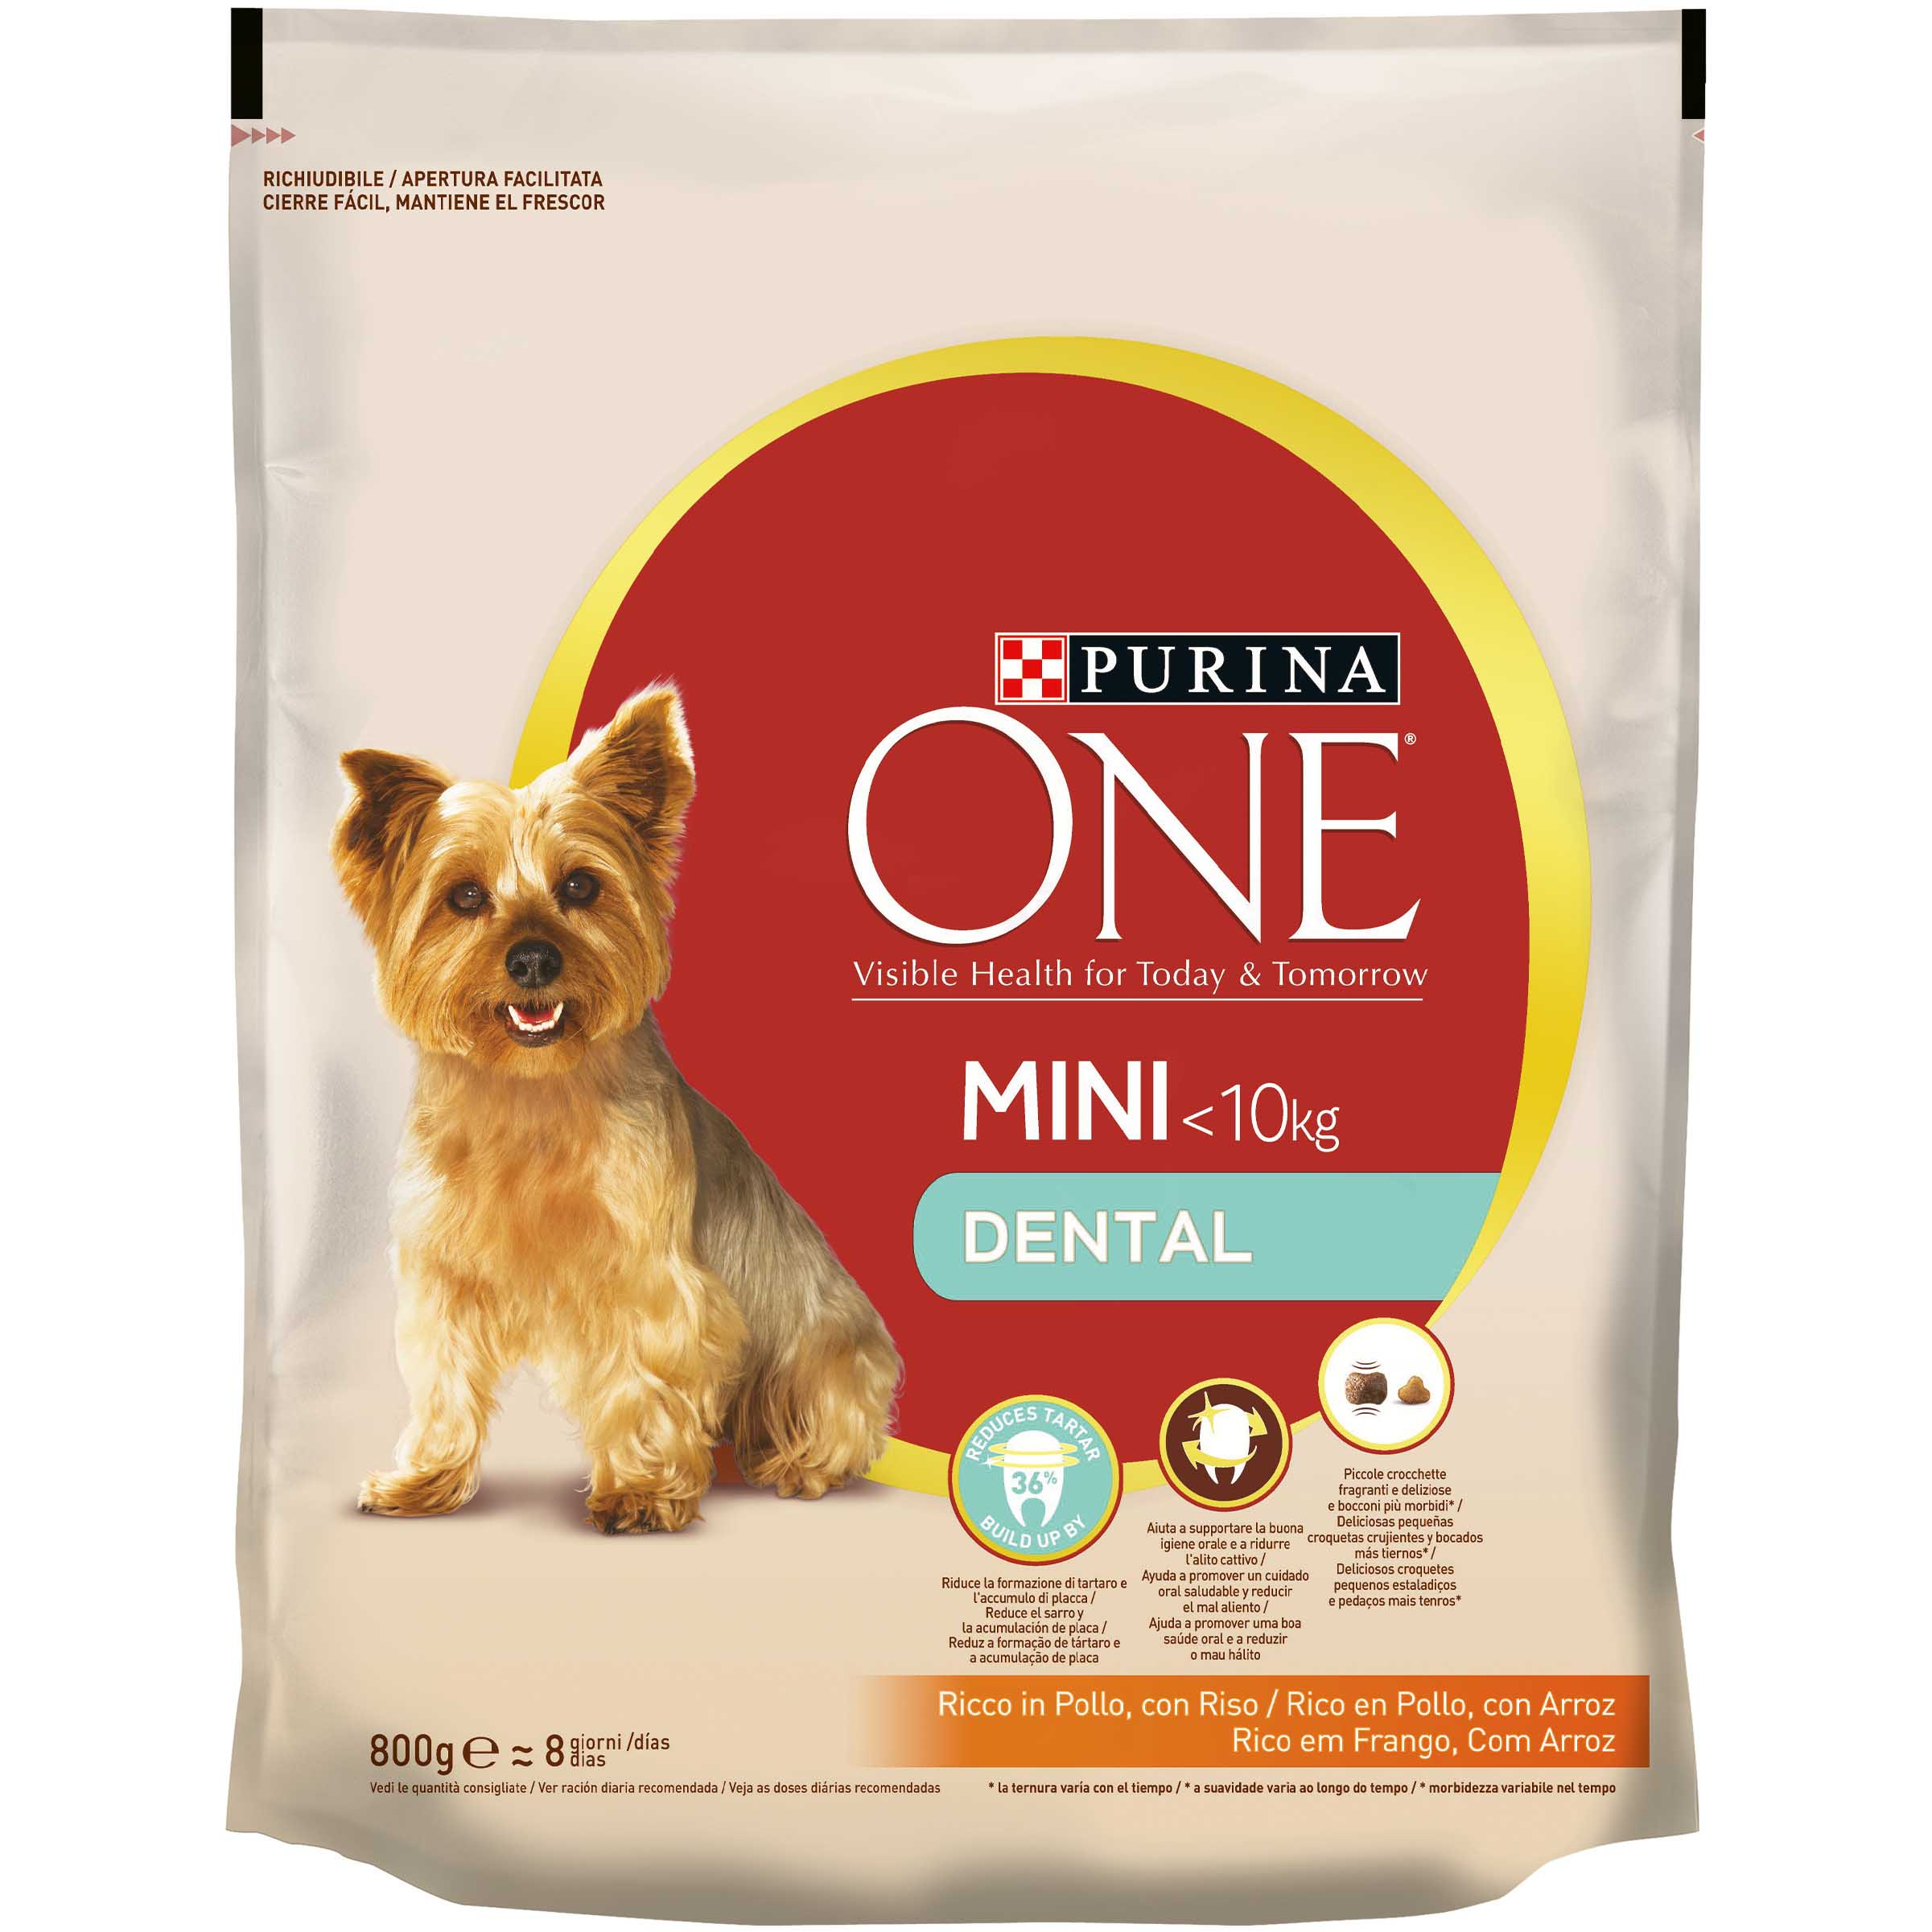 Purina One Mini dental alimento perro adulto raza mini cuidado dental de 800g. en paquete